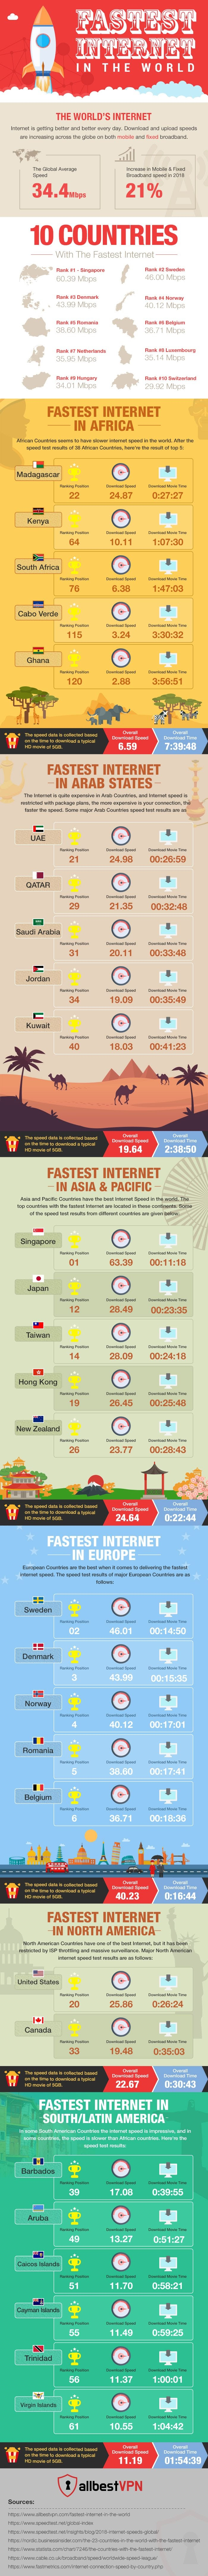 Who Has The Fastest And Slowest Internet in the World? #infographic